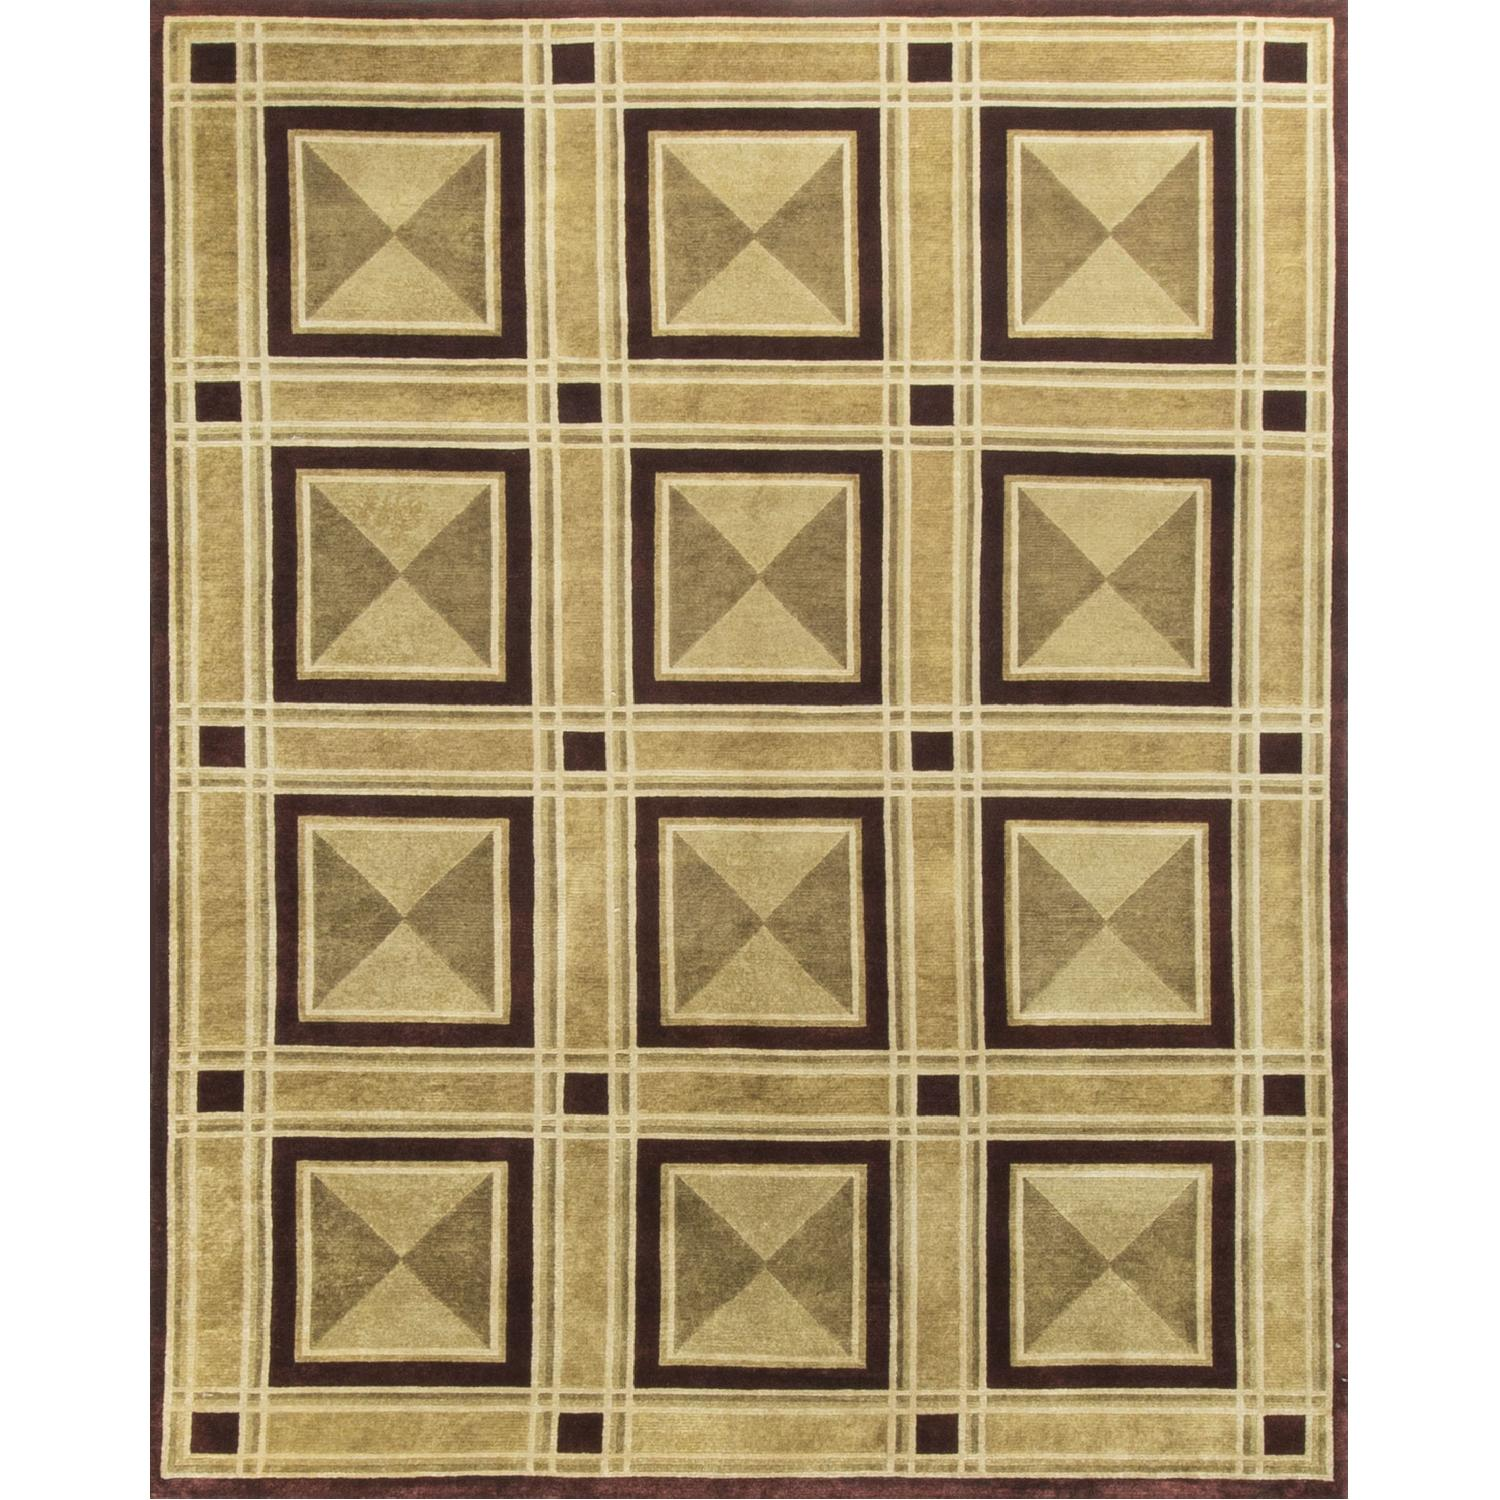 Modern Contemporary Hand Knotted Wool Rug in Black/Beige - image-0